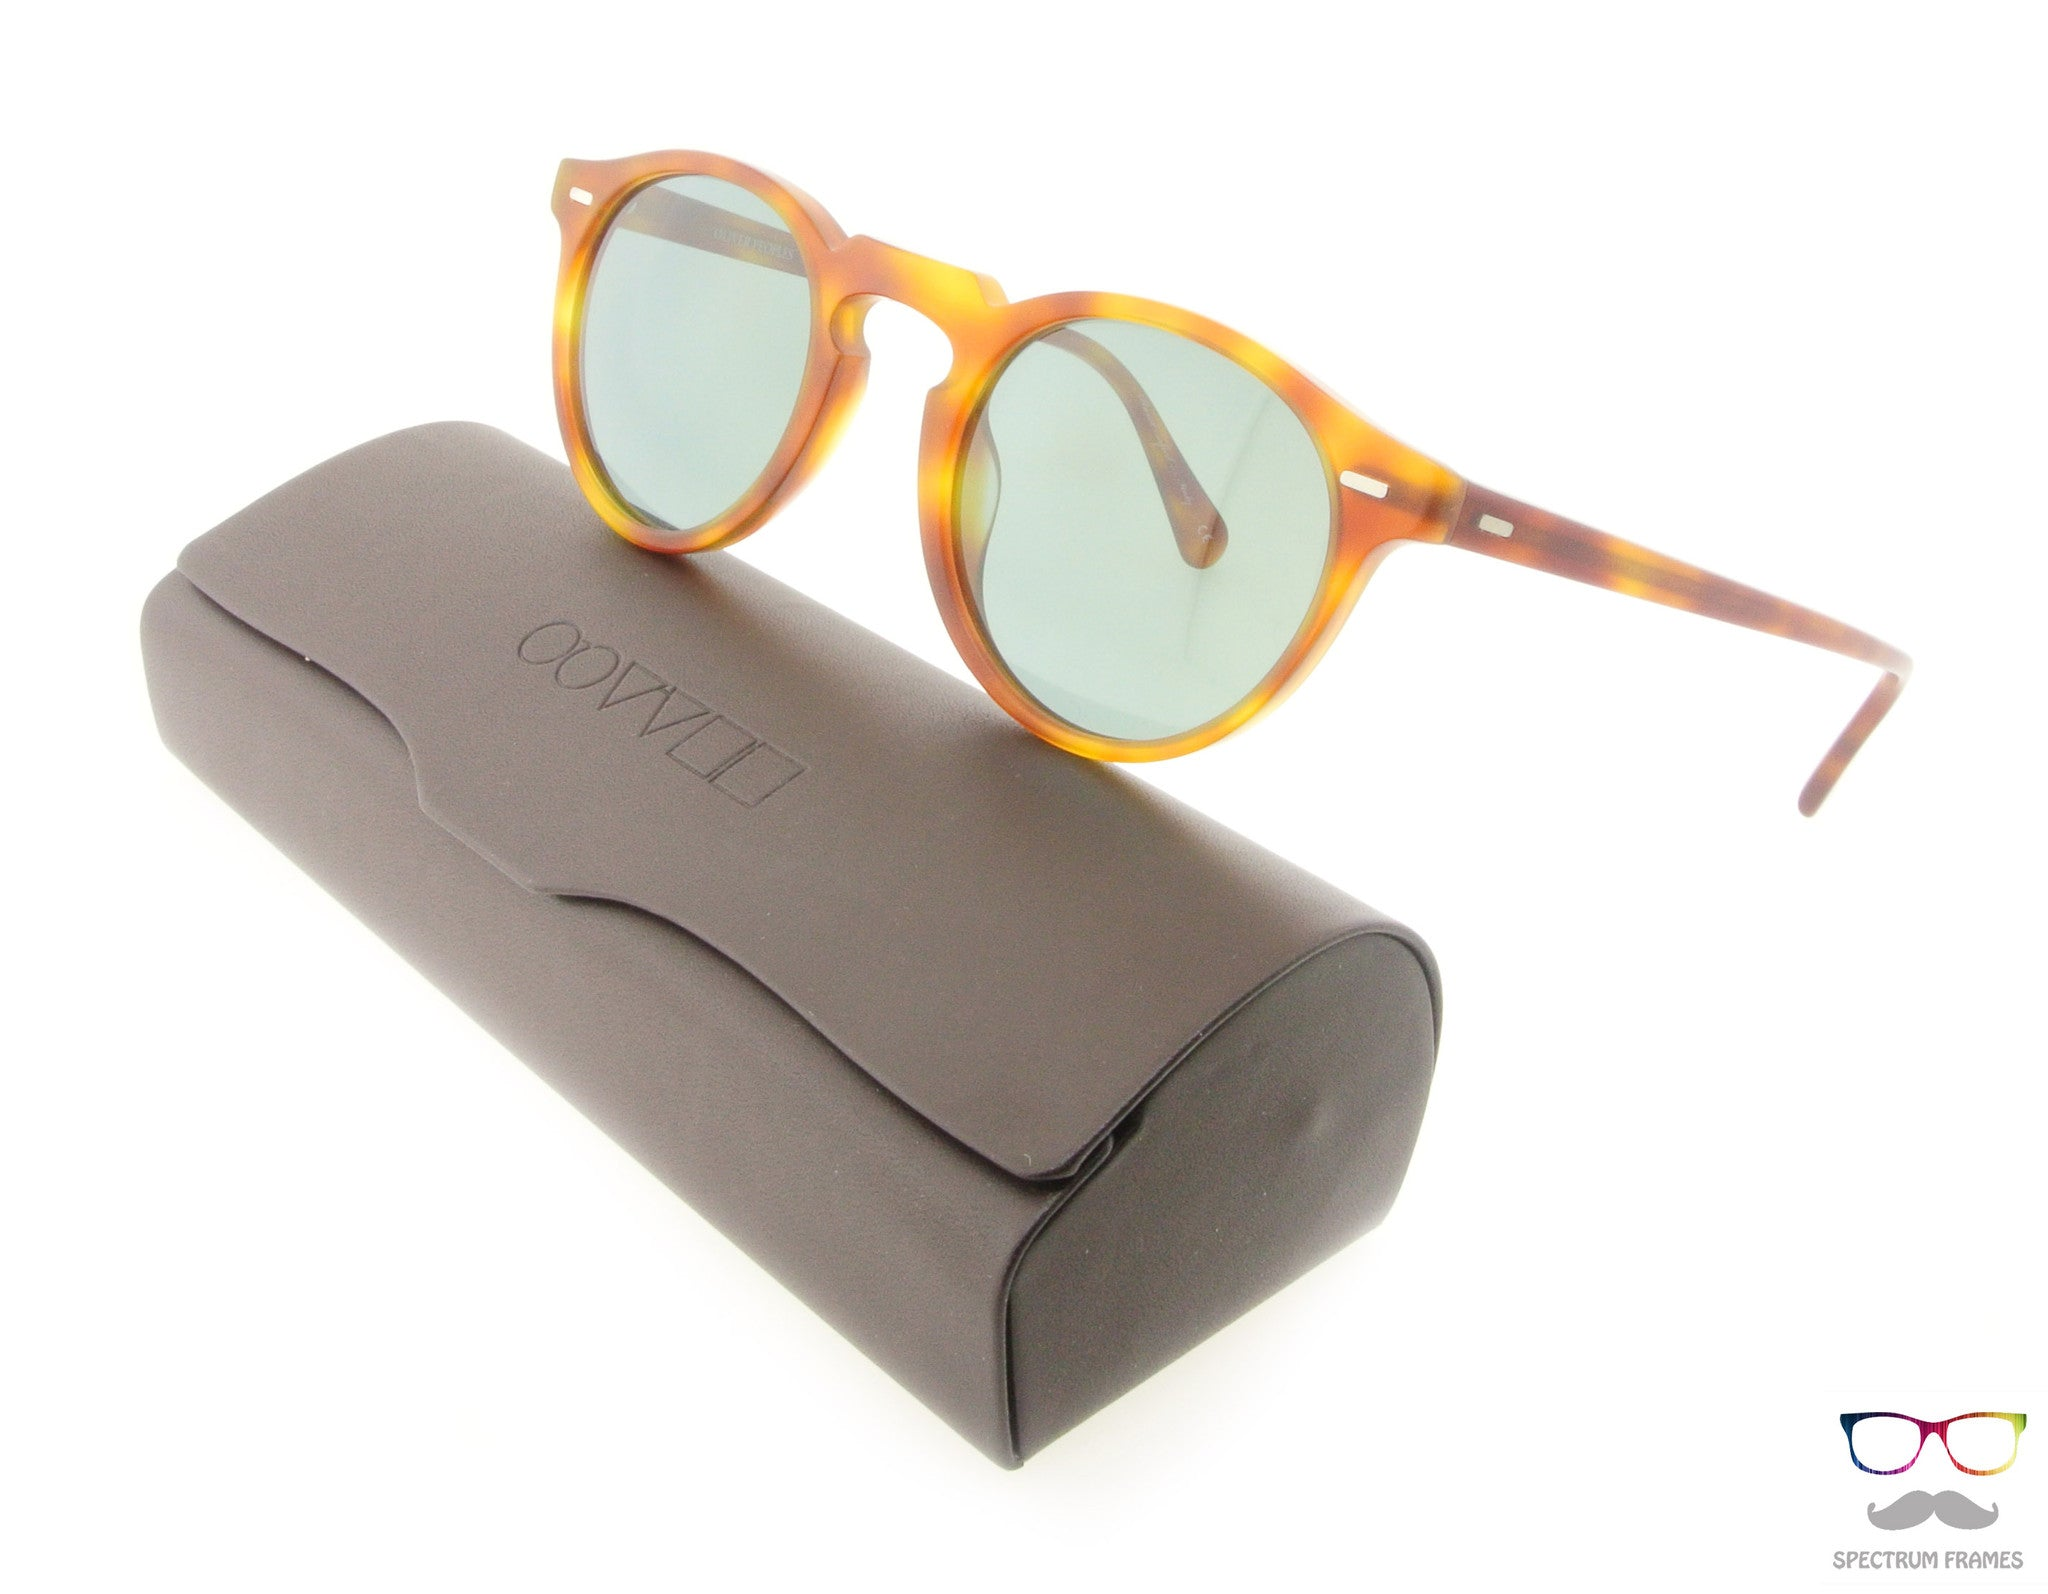 0a3a1381a7 Oliver Peoples Sunglasses Gregory Peck 5217S 1483 R8 Light Havana with Blue  Photo Lenses